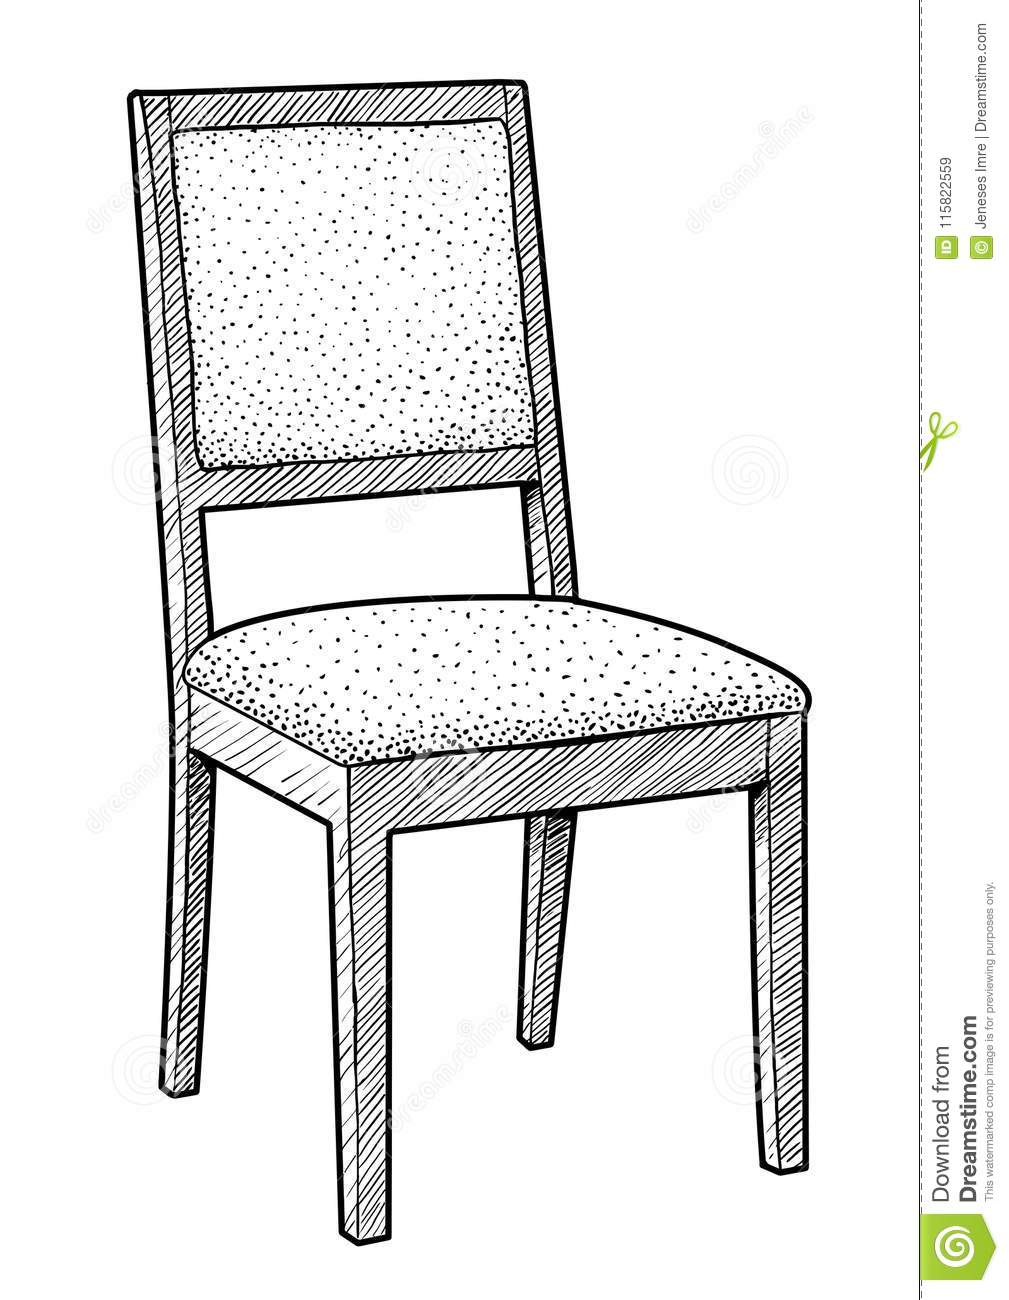 Surprising Wooden Chair Illustration Drawing Engraving Ink Line Art Pdpeps Interior Chair Design Pdpepsorg